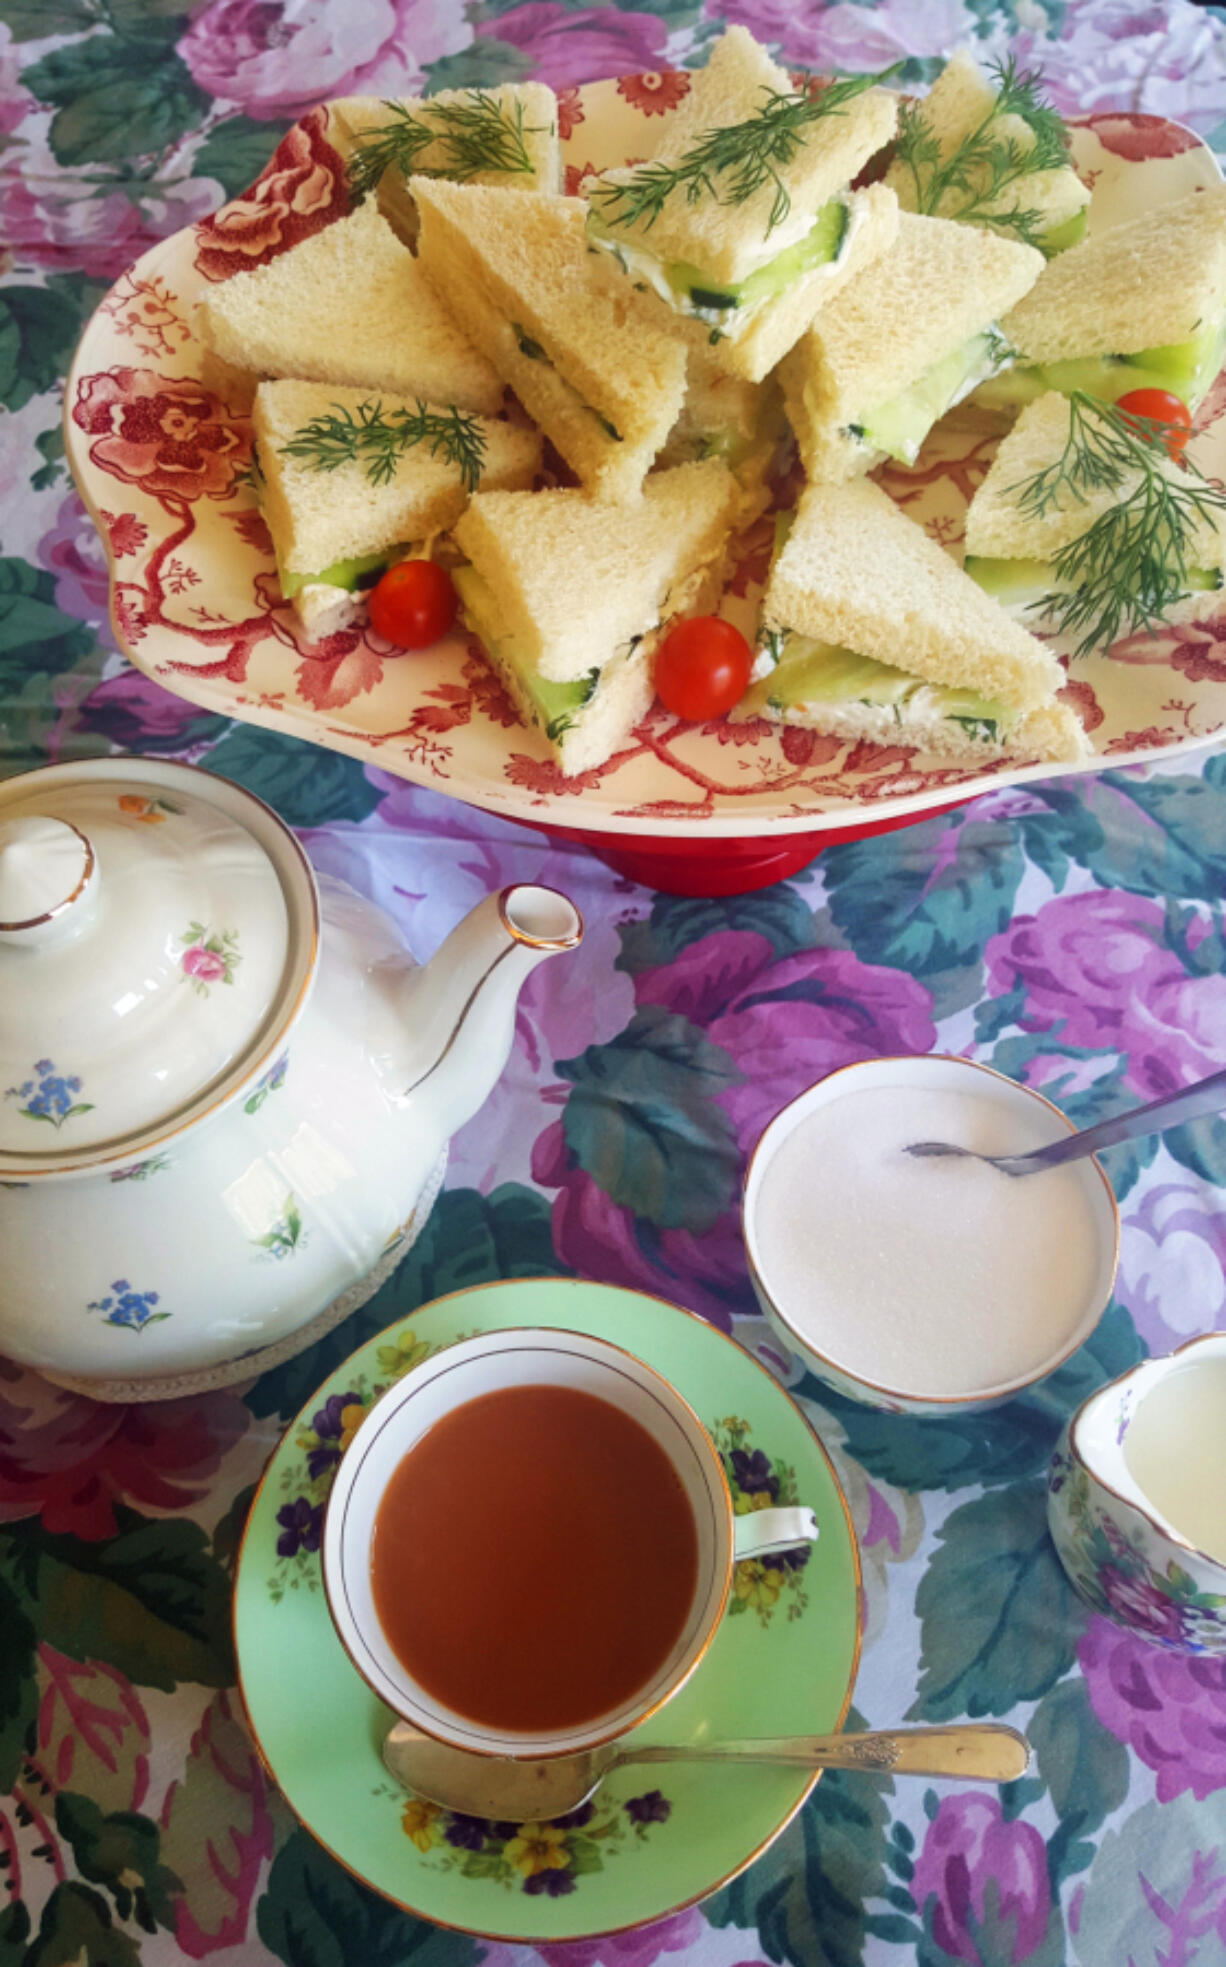 Put out an assortment of little sandwiches, tea, milk, sugar, scones and other treats and let guests serve themselves.